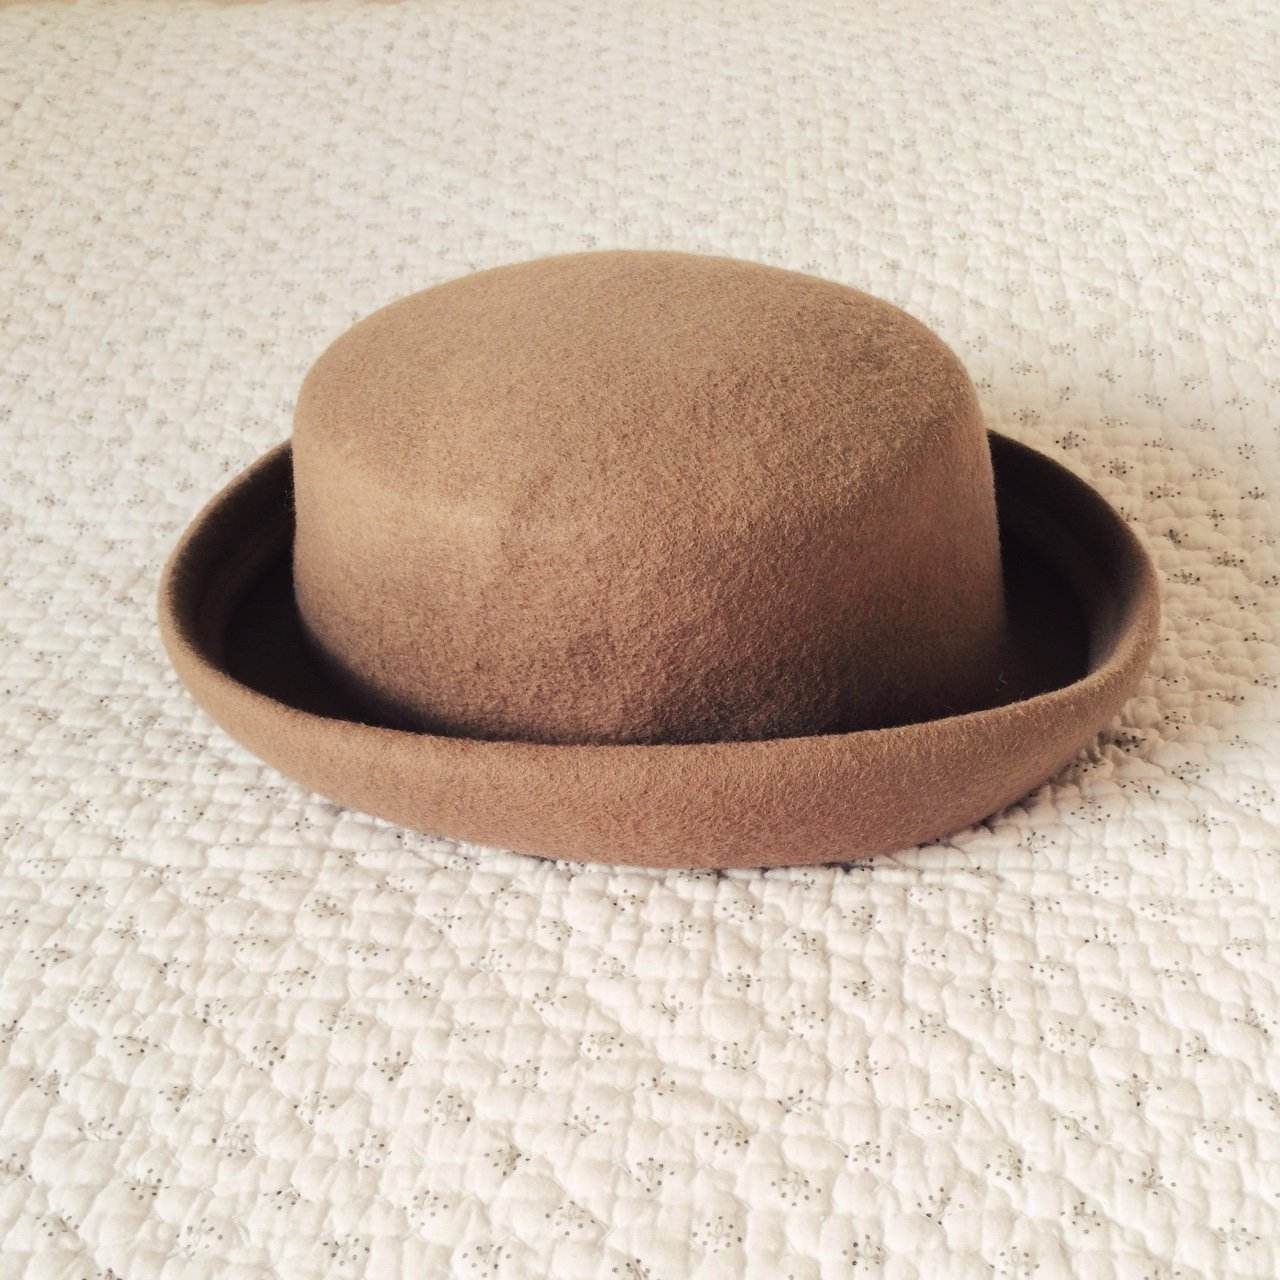 Beige material small bowler hat 👒 only worn twice and in - Depop 0228e891b6d